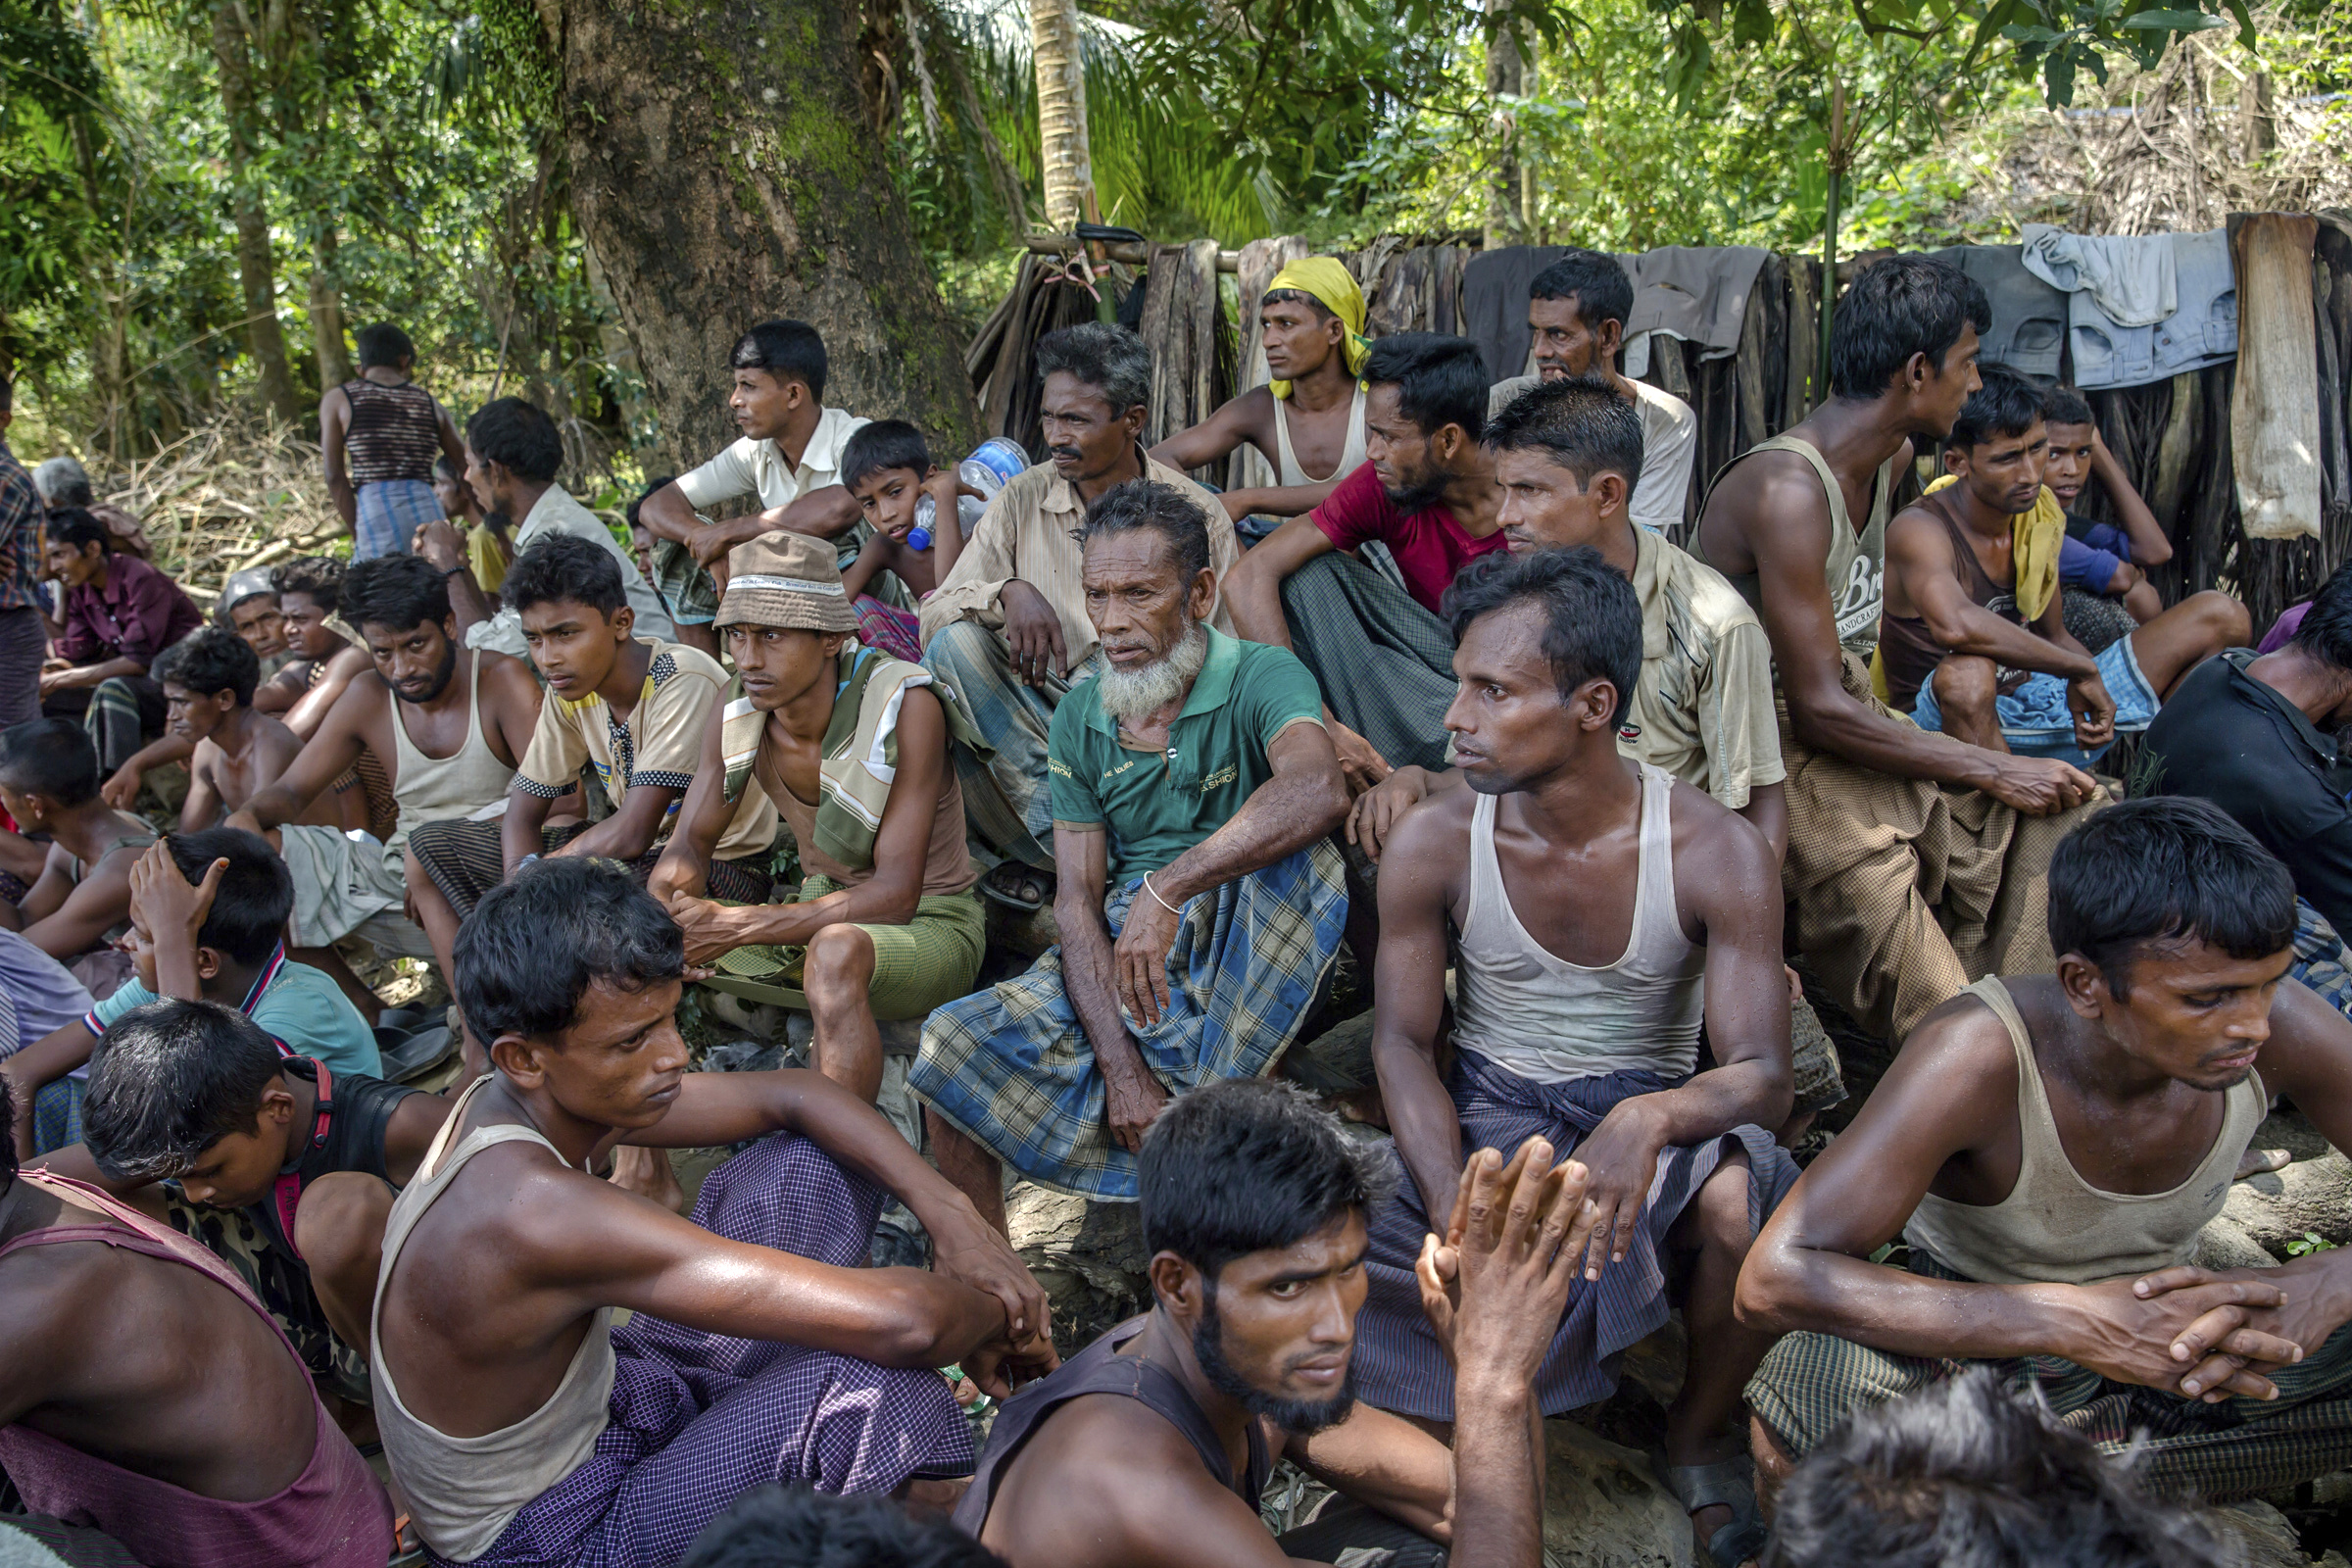 FILE - Rohingya Muslims from Myanmar wait to carry food items from Bangladesh's border toward a no man's land where they set up refugee camps in Tombru, Bangladesh, Sept. 15, 2017.